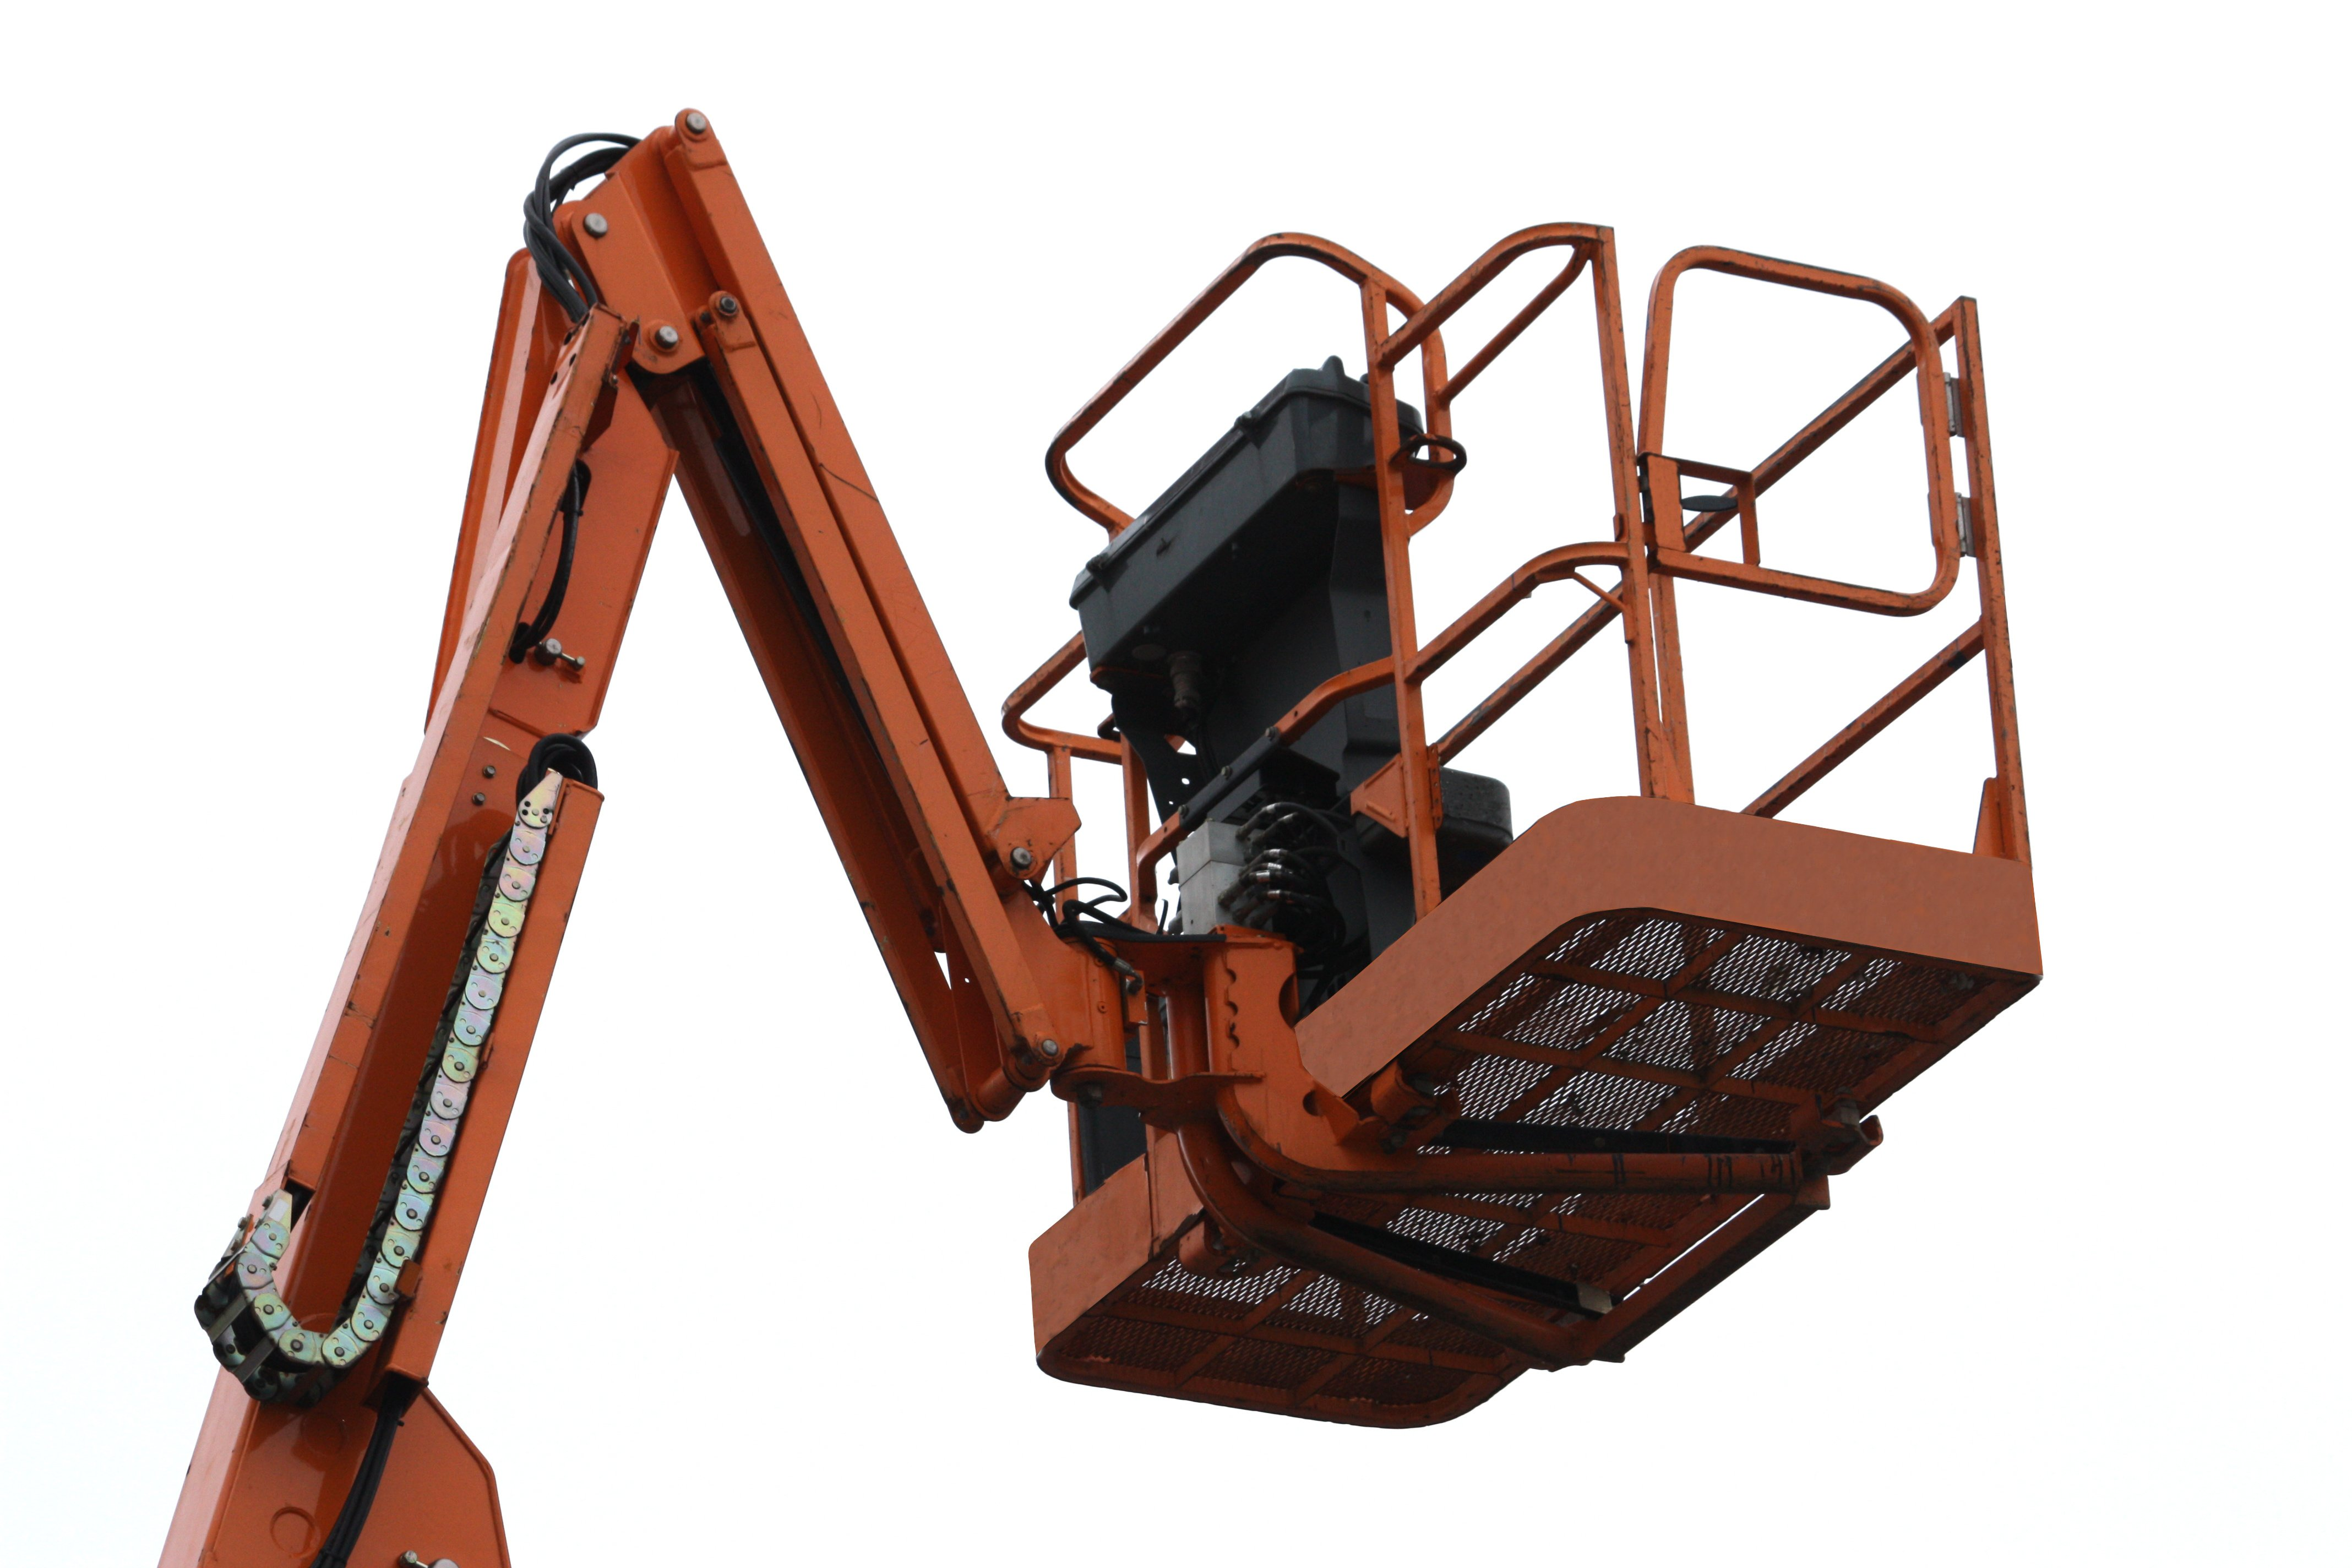 An Orange Mechanical Lift - Cherry Picker.